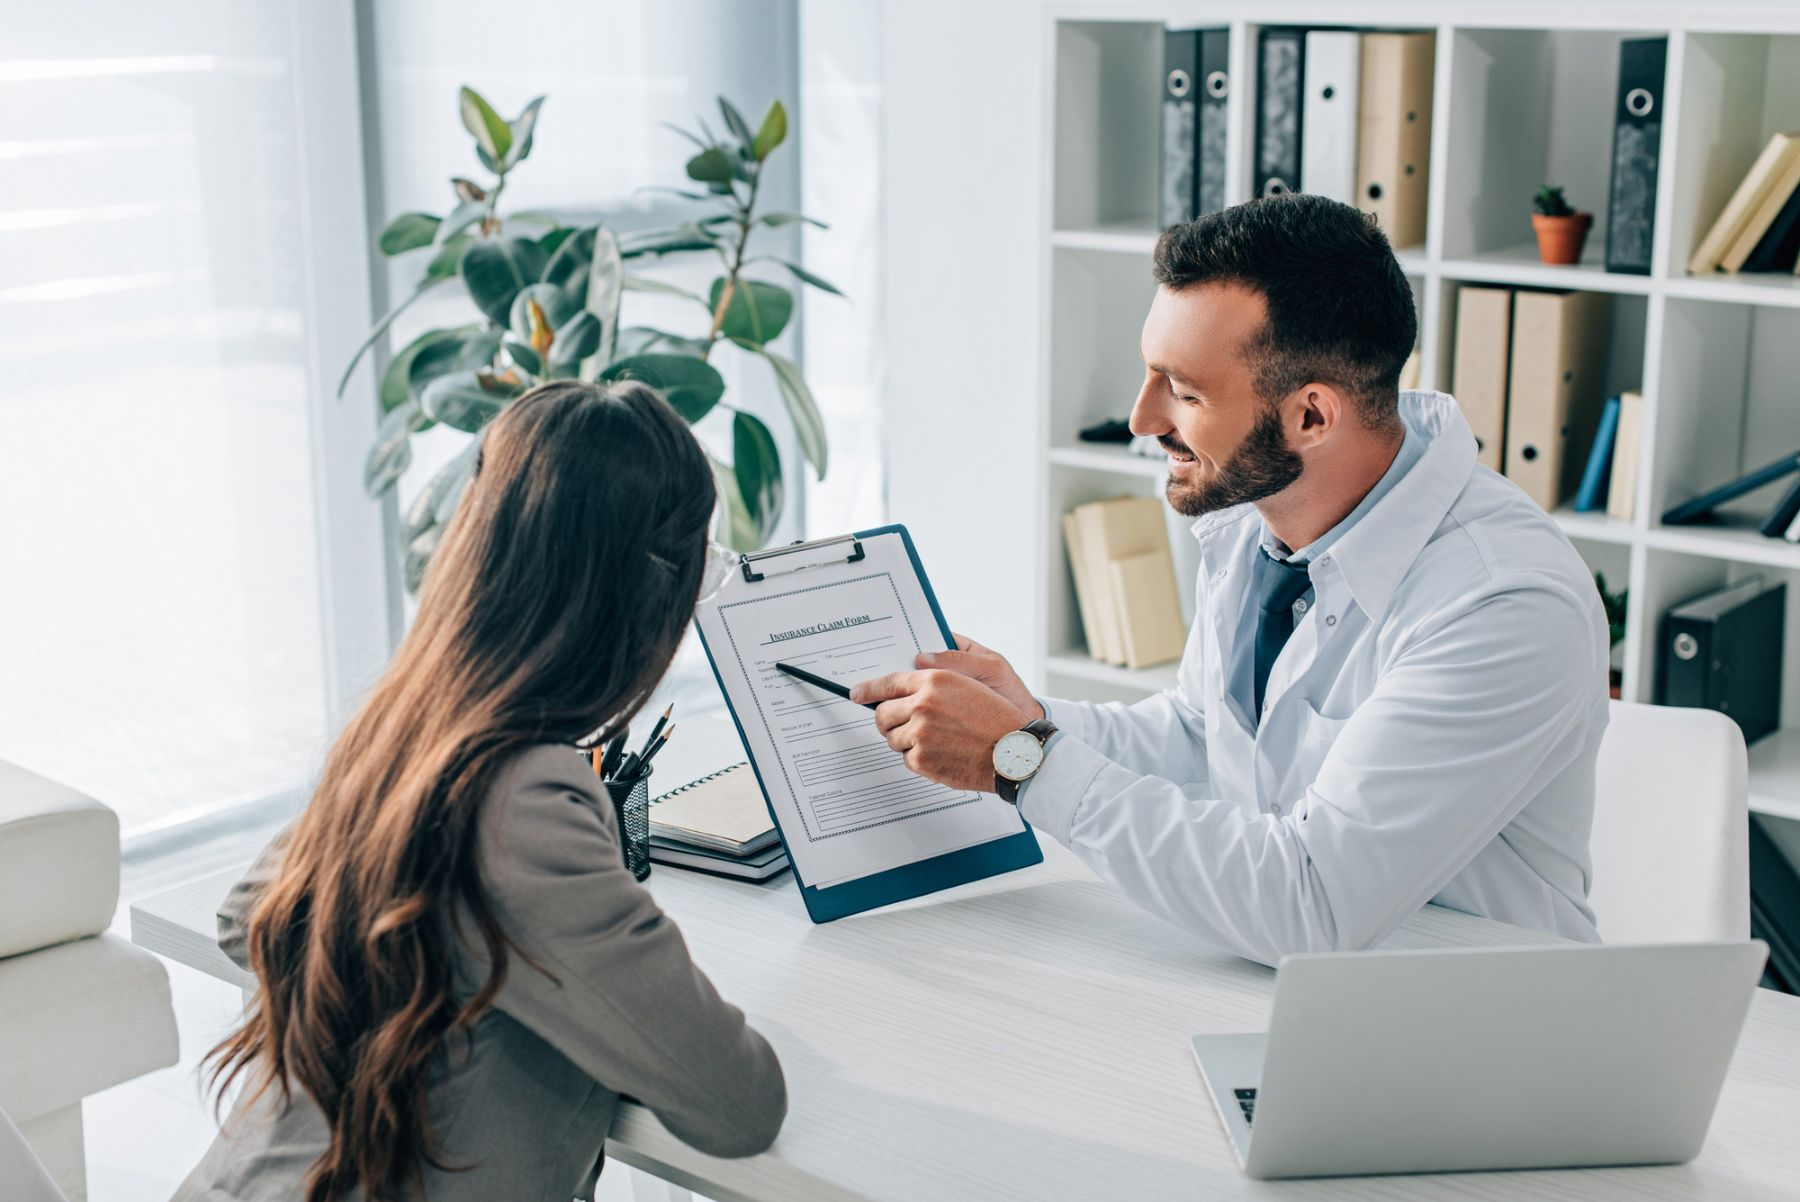 Doctor and patient talking about a form